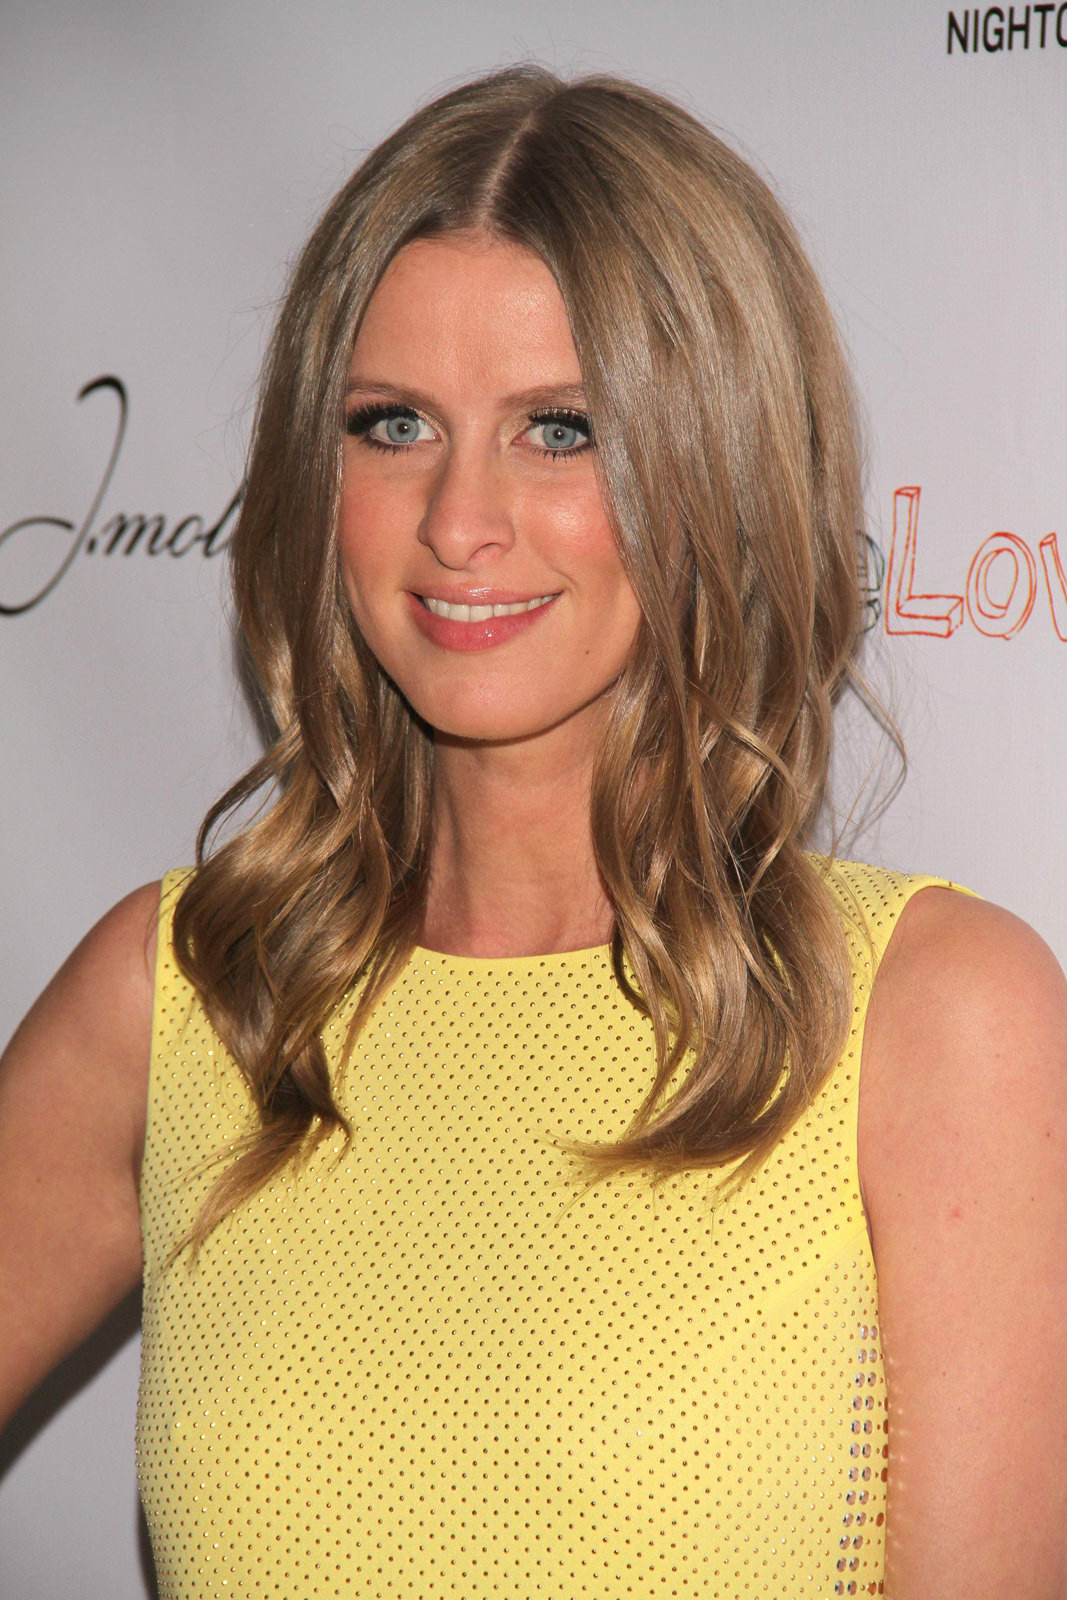 Nicky Hilton Photo Gallery